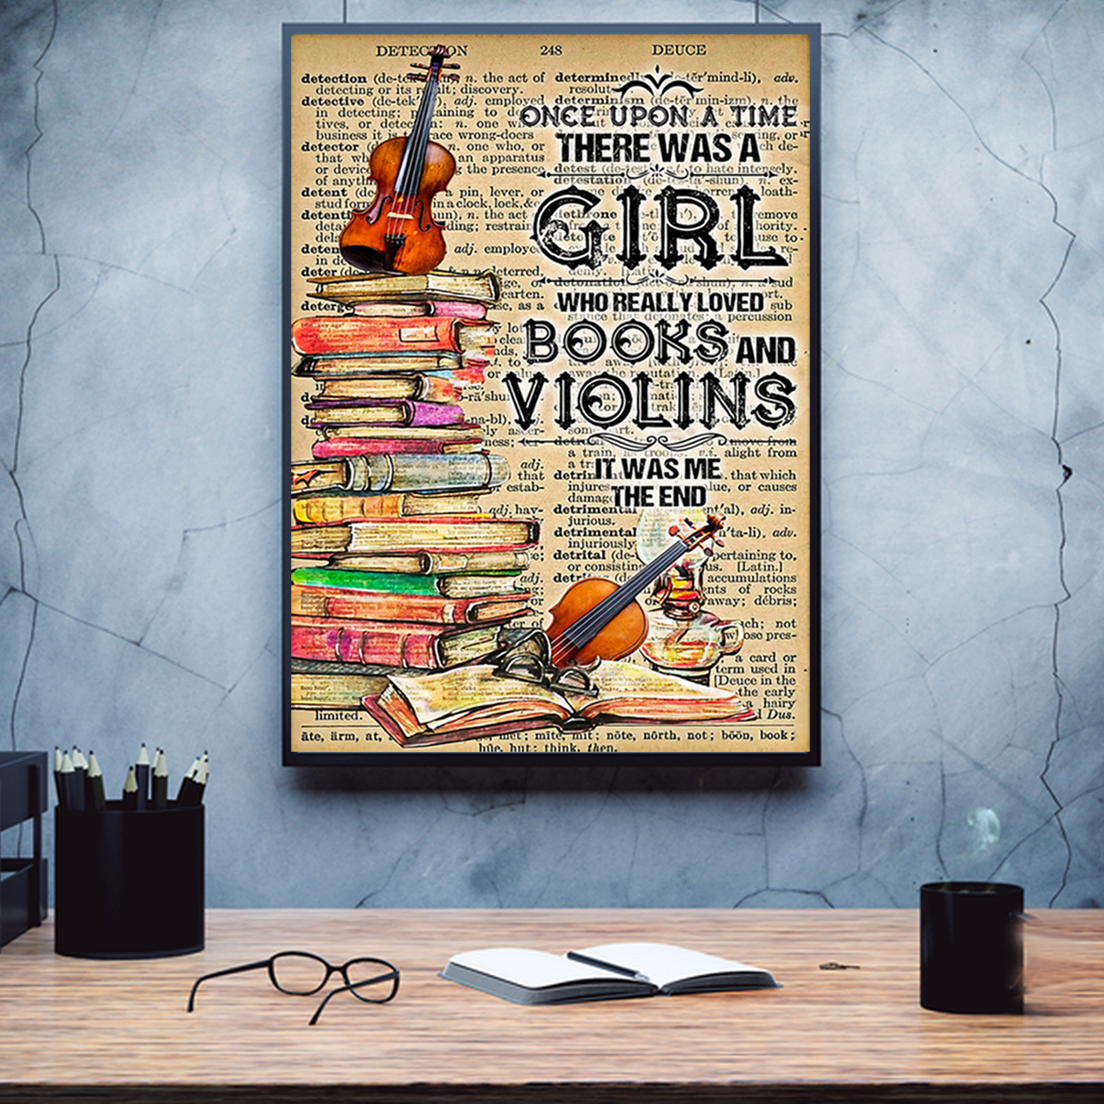 Once upon a time there was a girl who really loved books and violins poster A2